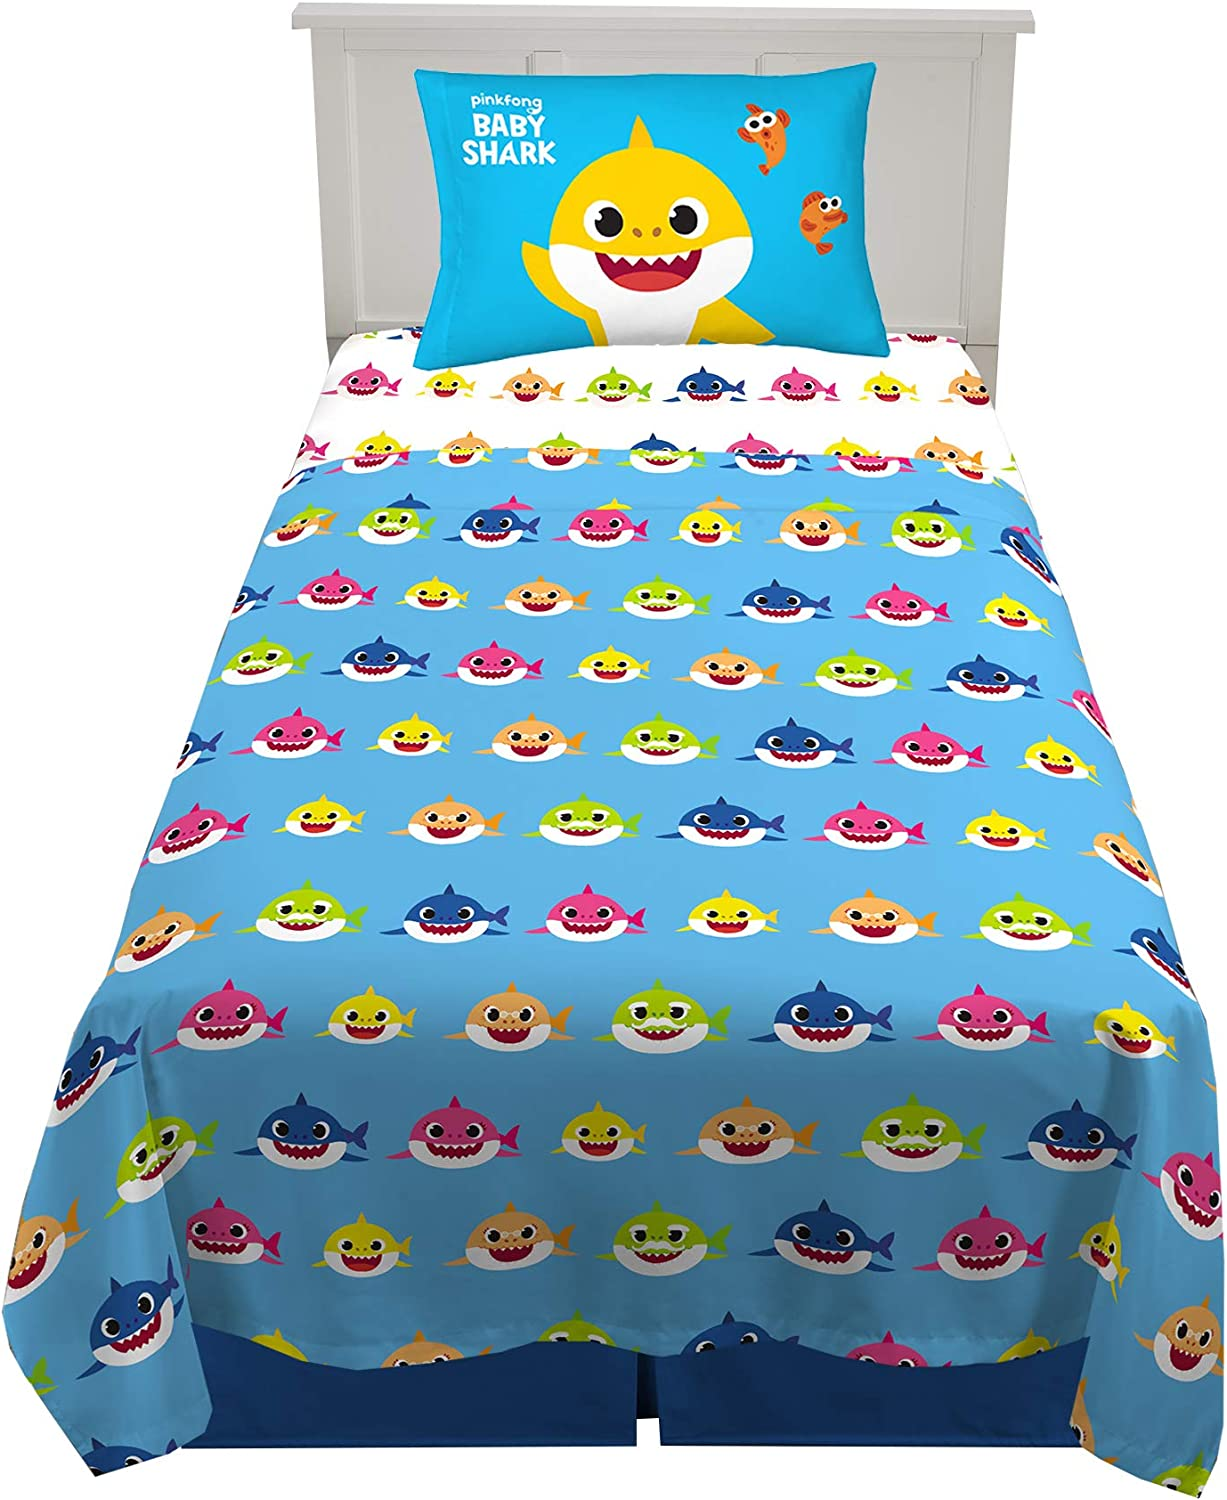 Super Soft Baby Shark Kids Bed Sheet